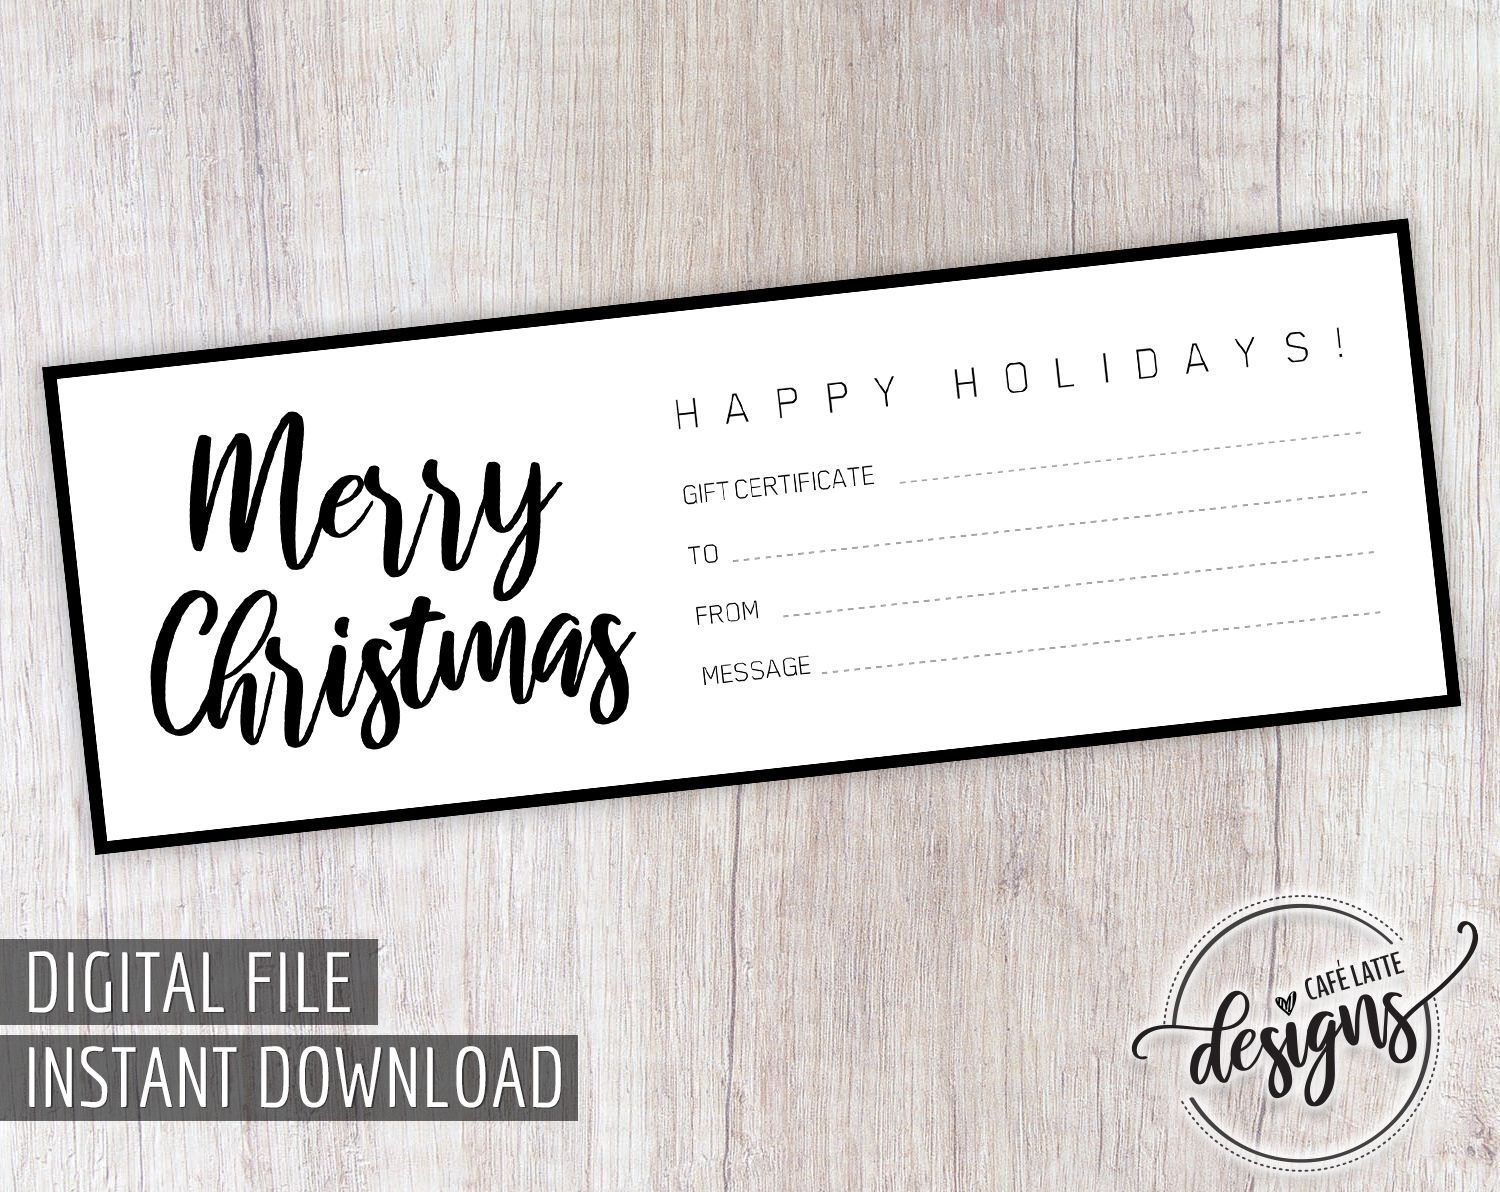 Christmas Gift Certificate Gift Certificate Printable Gift Coupon Gift Instant Download Gift Idea Holiday Gift Black White Diy Gift Printable Gift Certificate Christmas Gift Certificate Holiday Gift Certificates